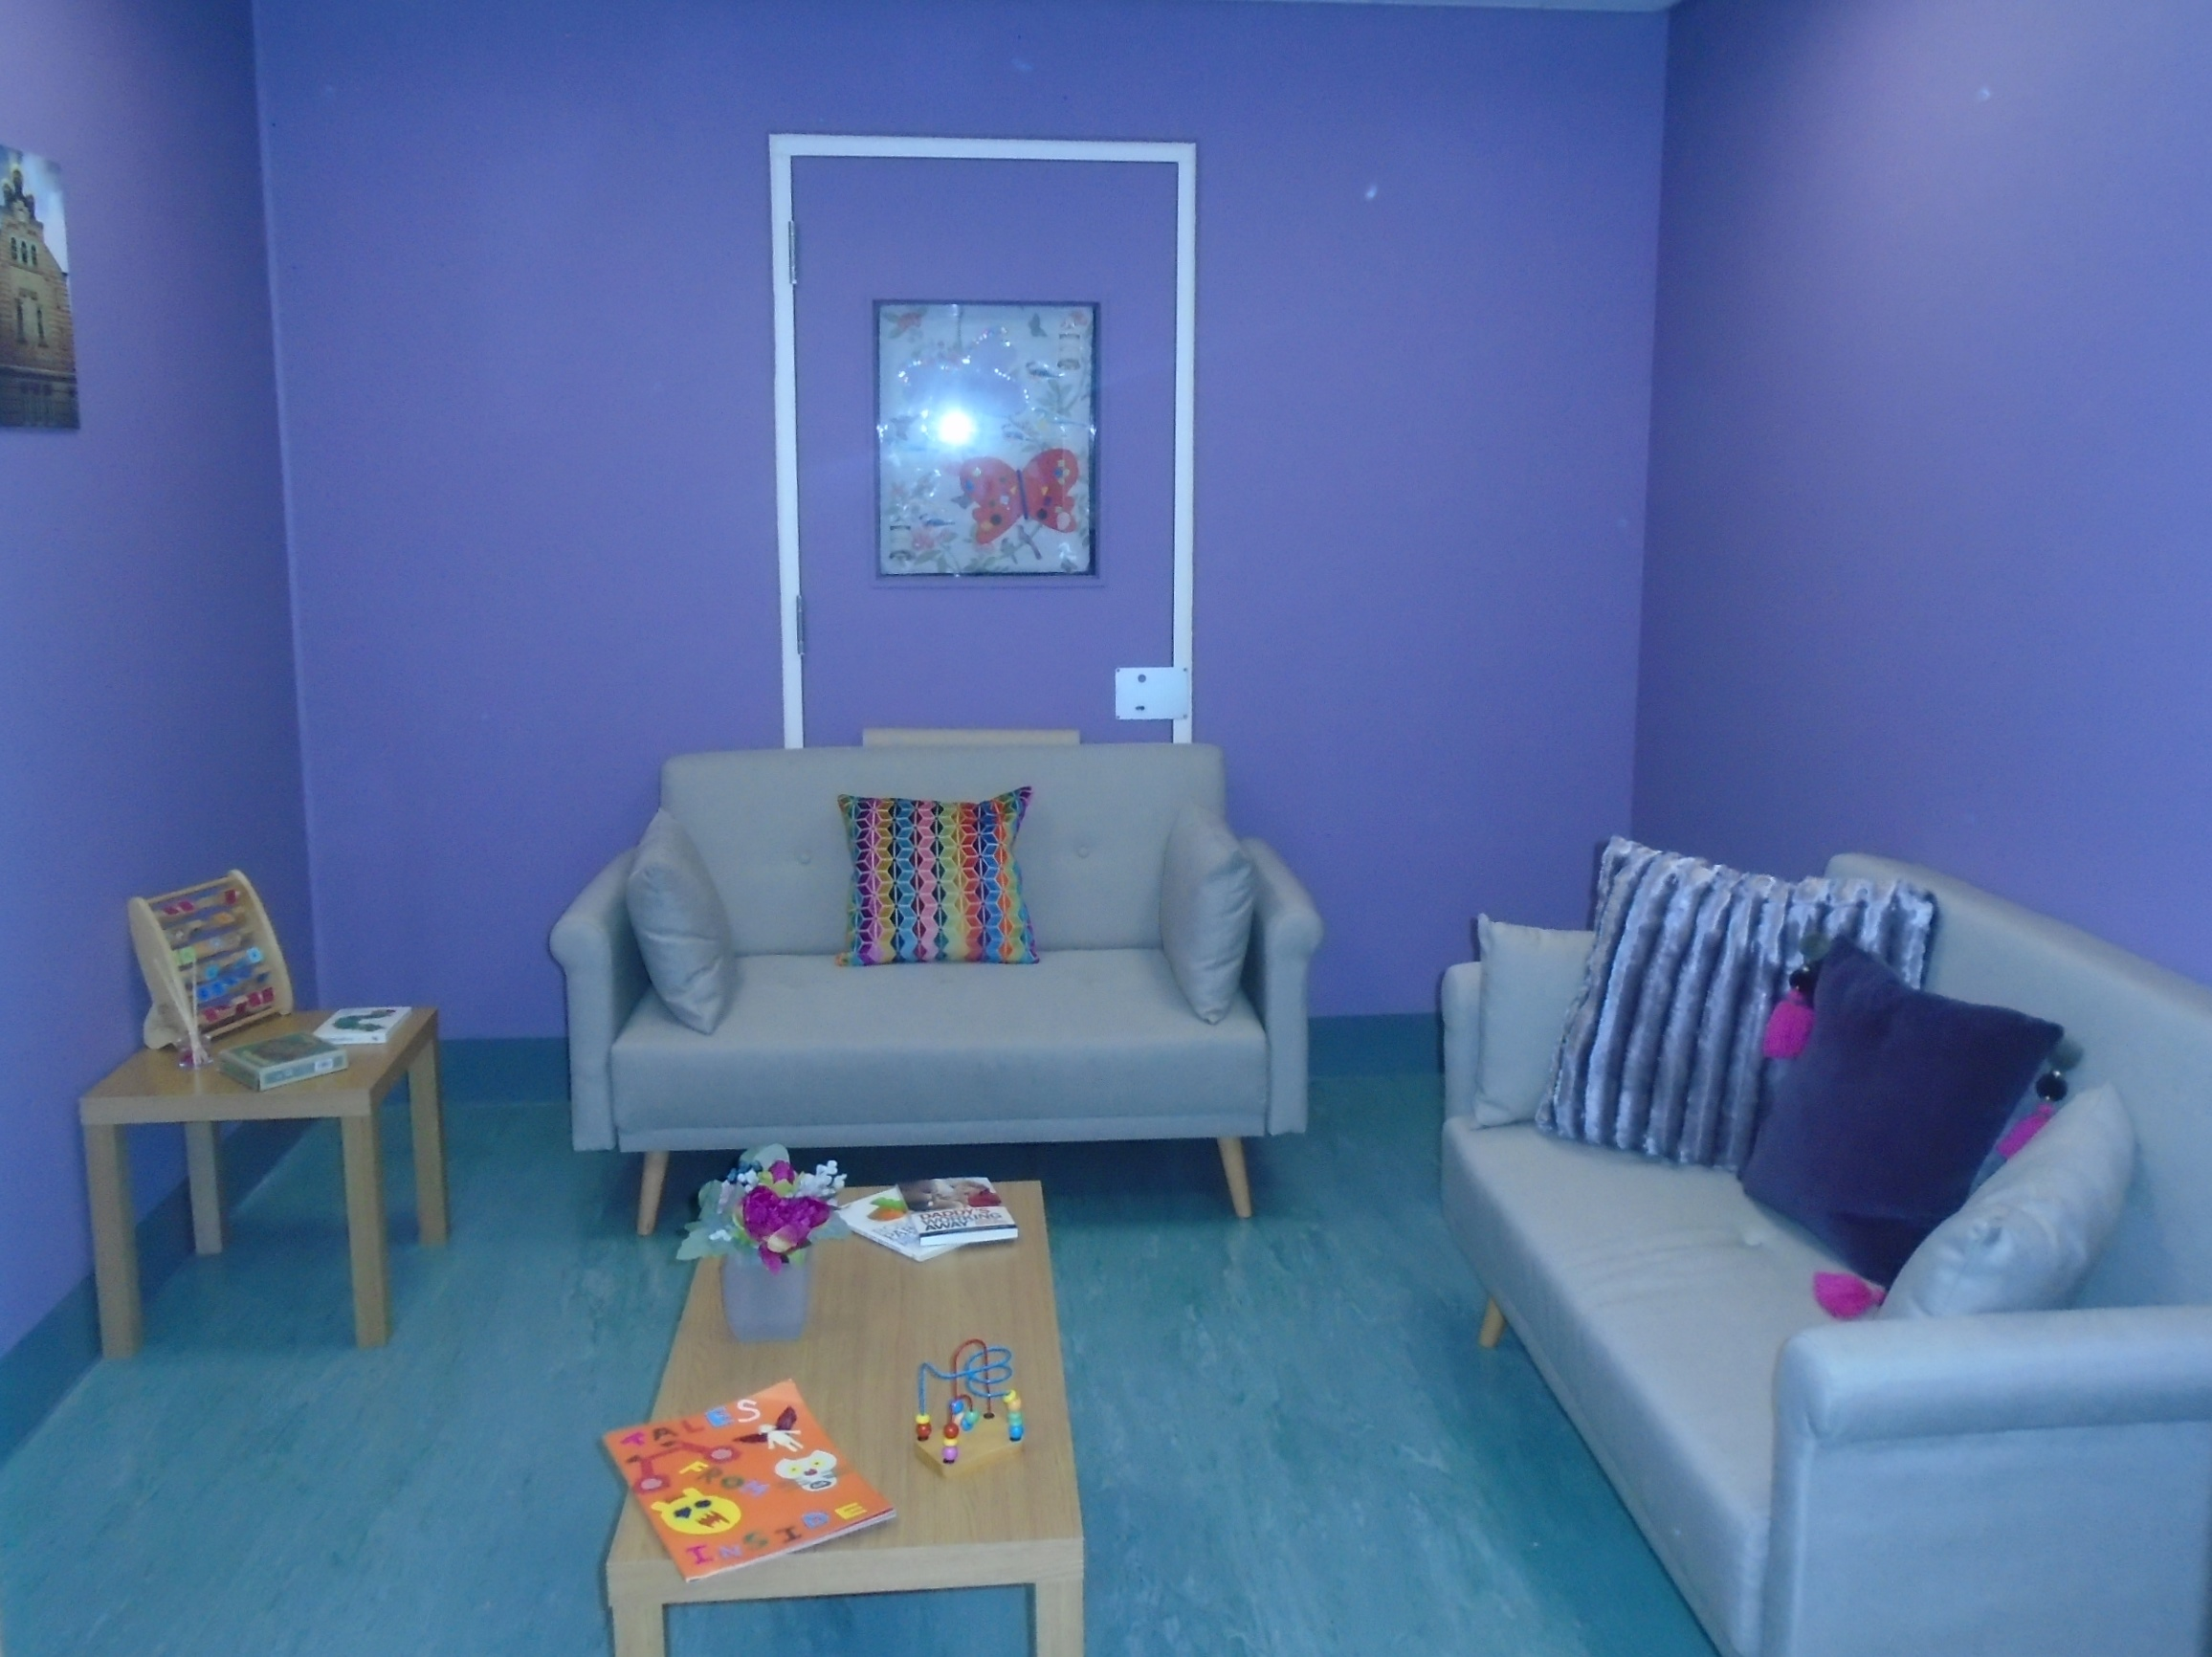 New family visiting room at HMP Oakwood